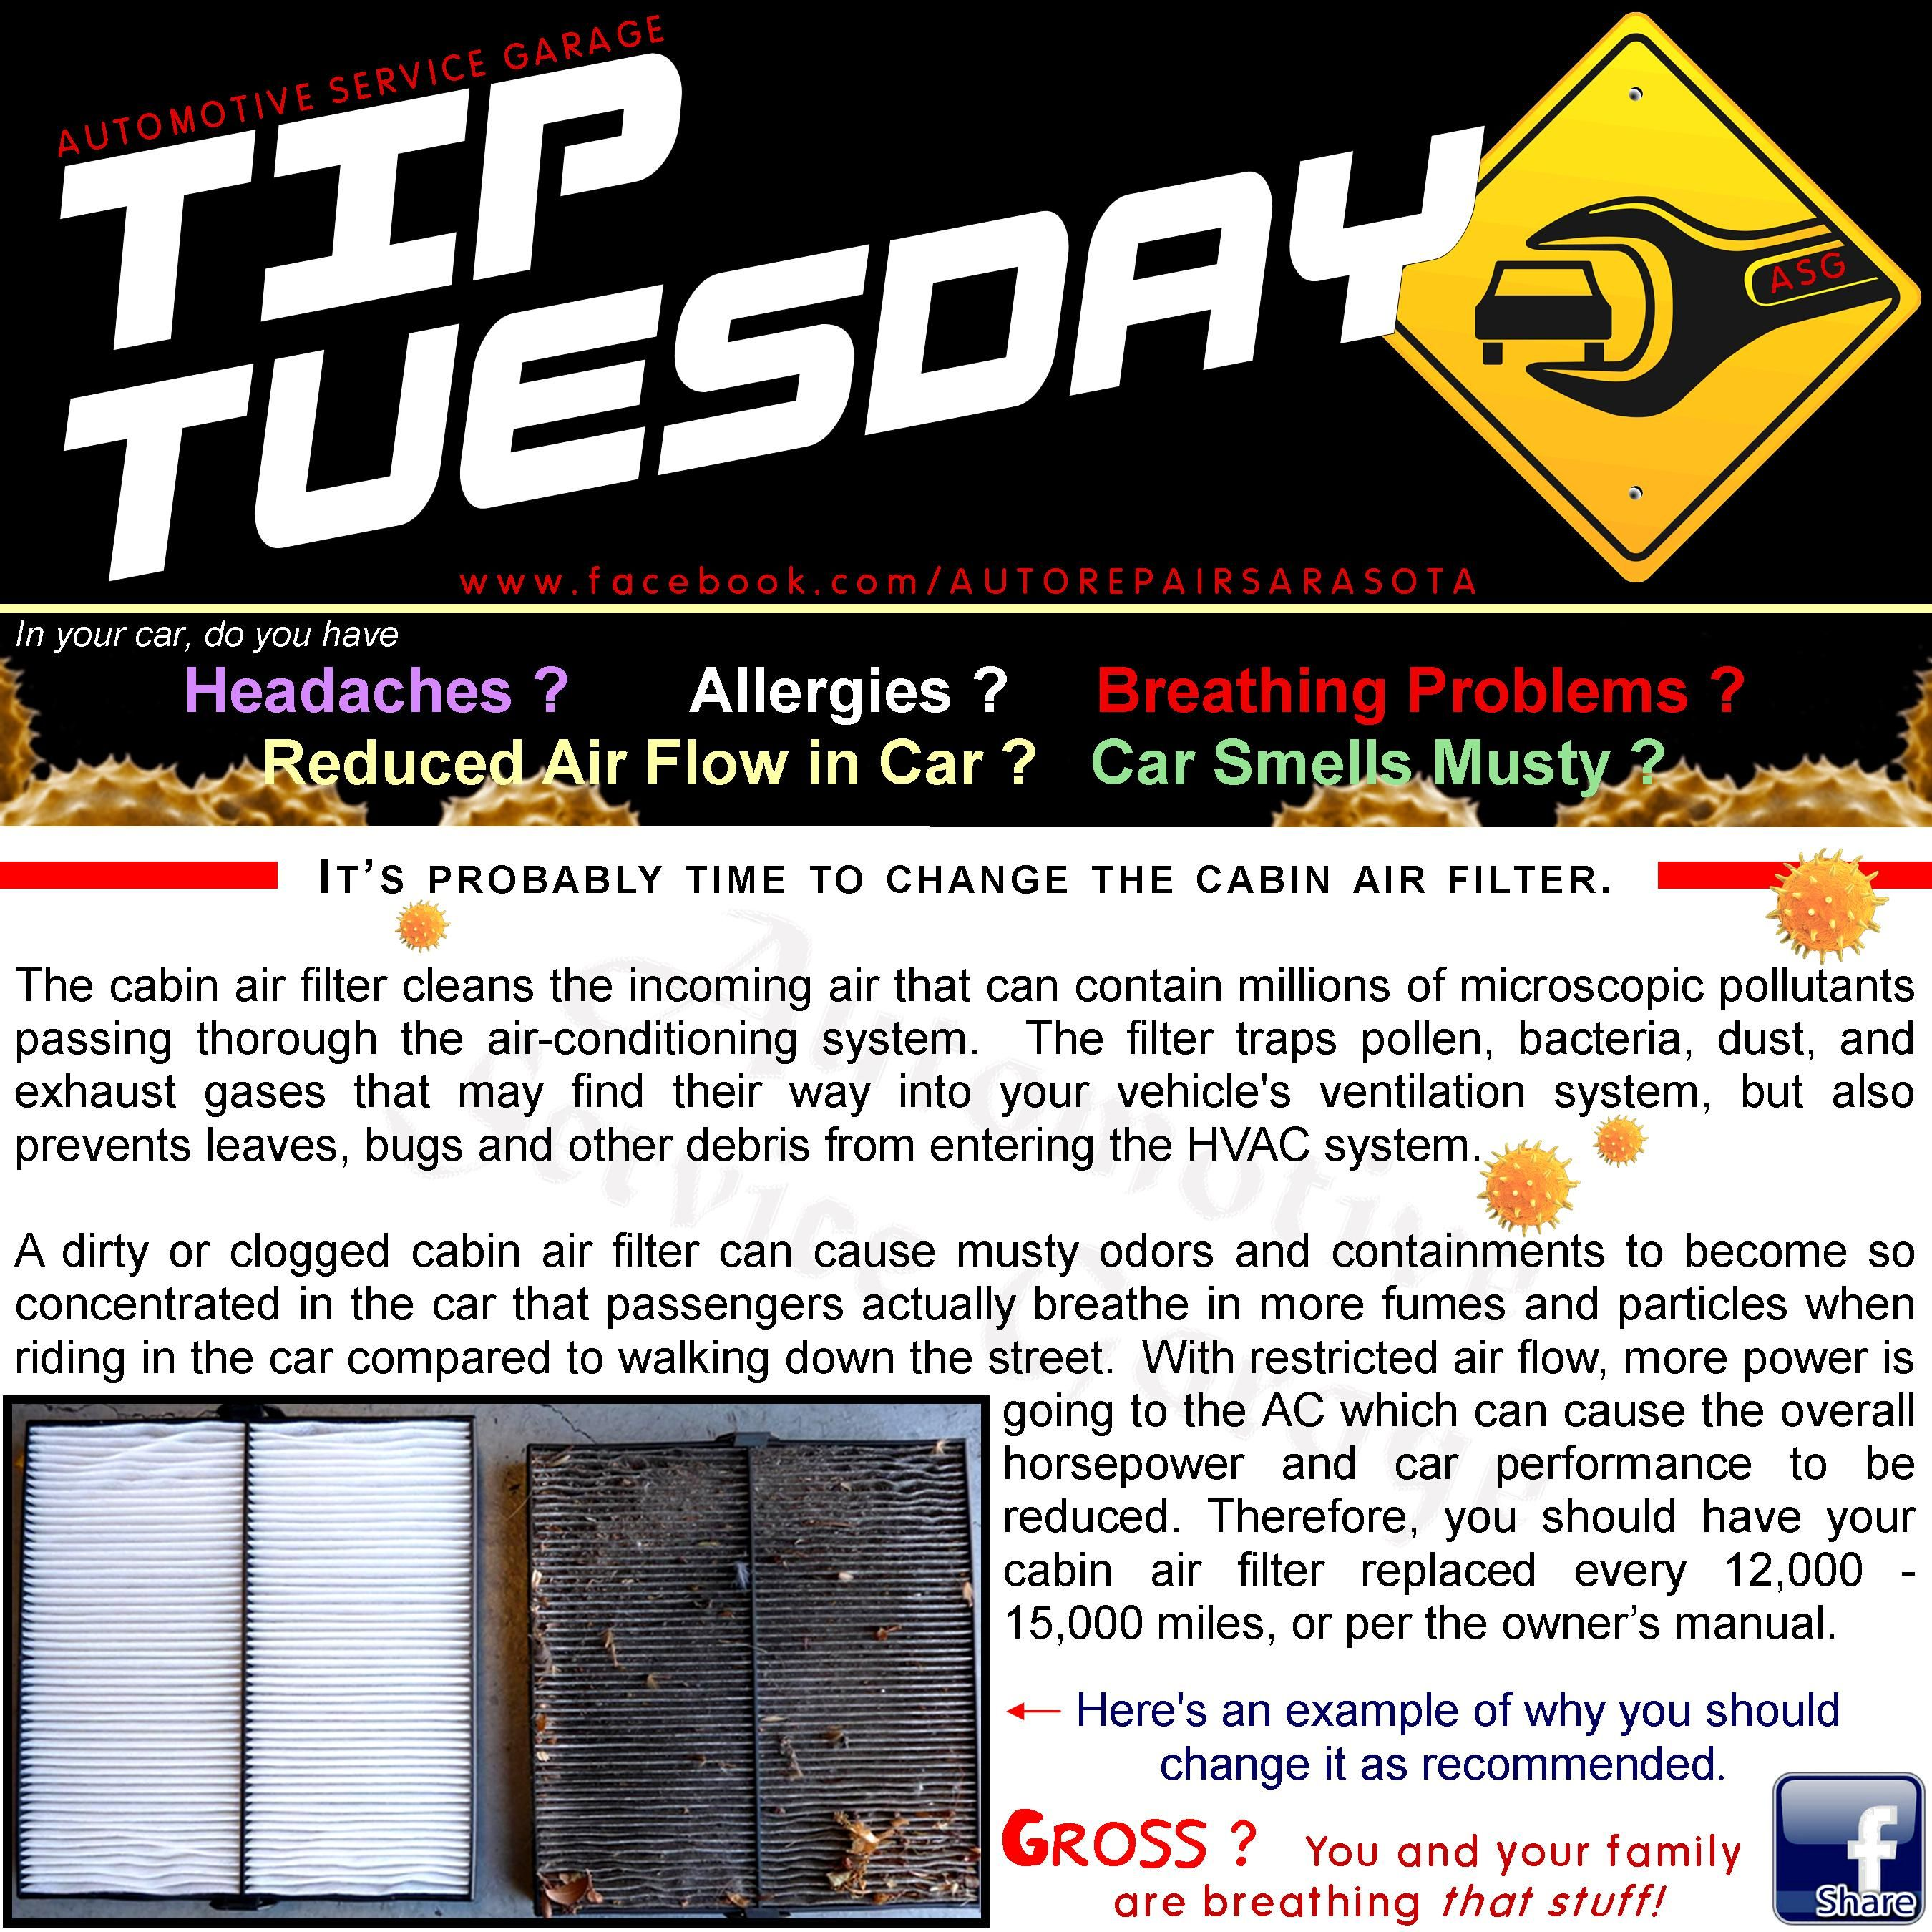 Car Care Tip Change your cabin air filter (AC filter) to